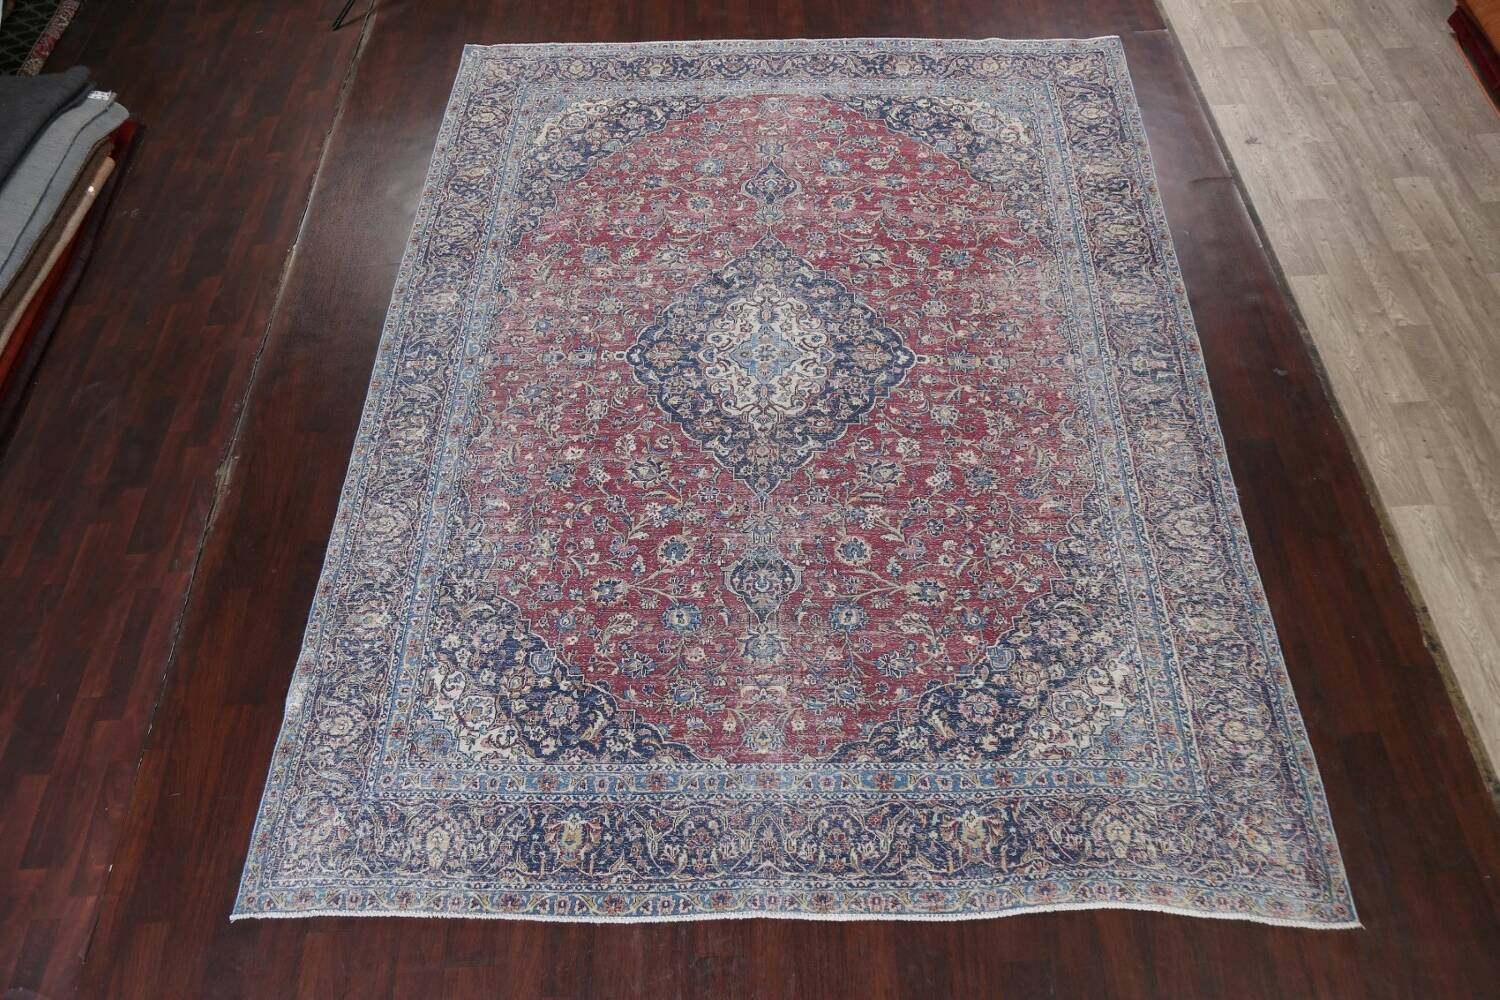 Antique Traditional Kashan Persian Rug 9x12 image 15